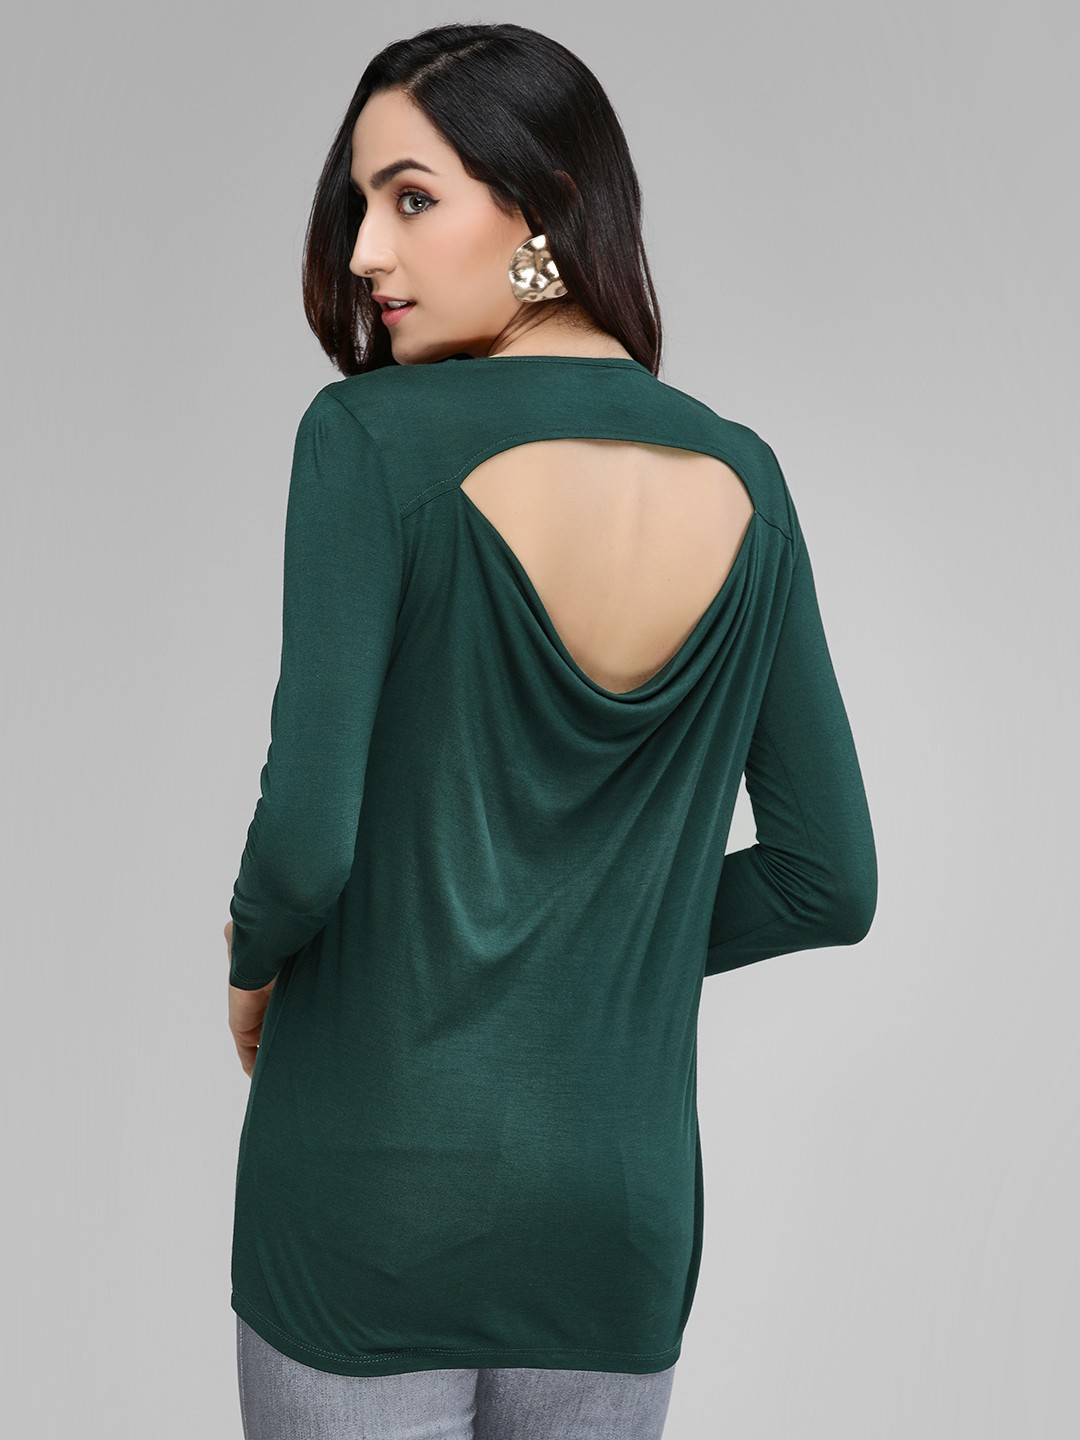 Femella Green Back Cowl Neck Top 1